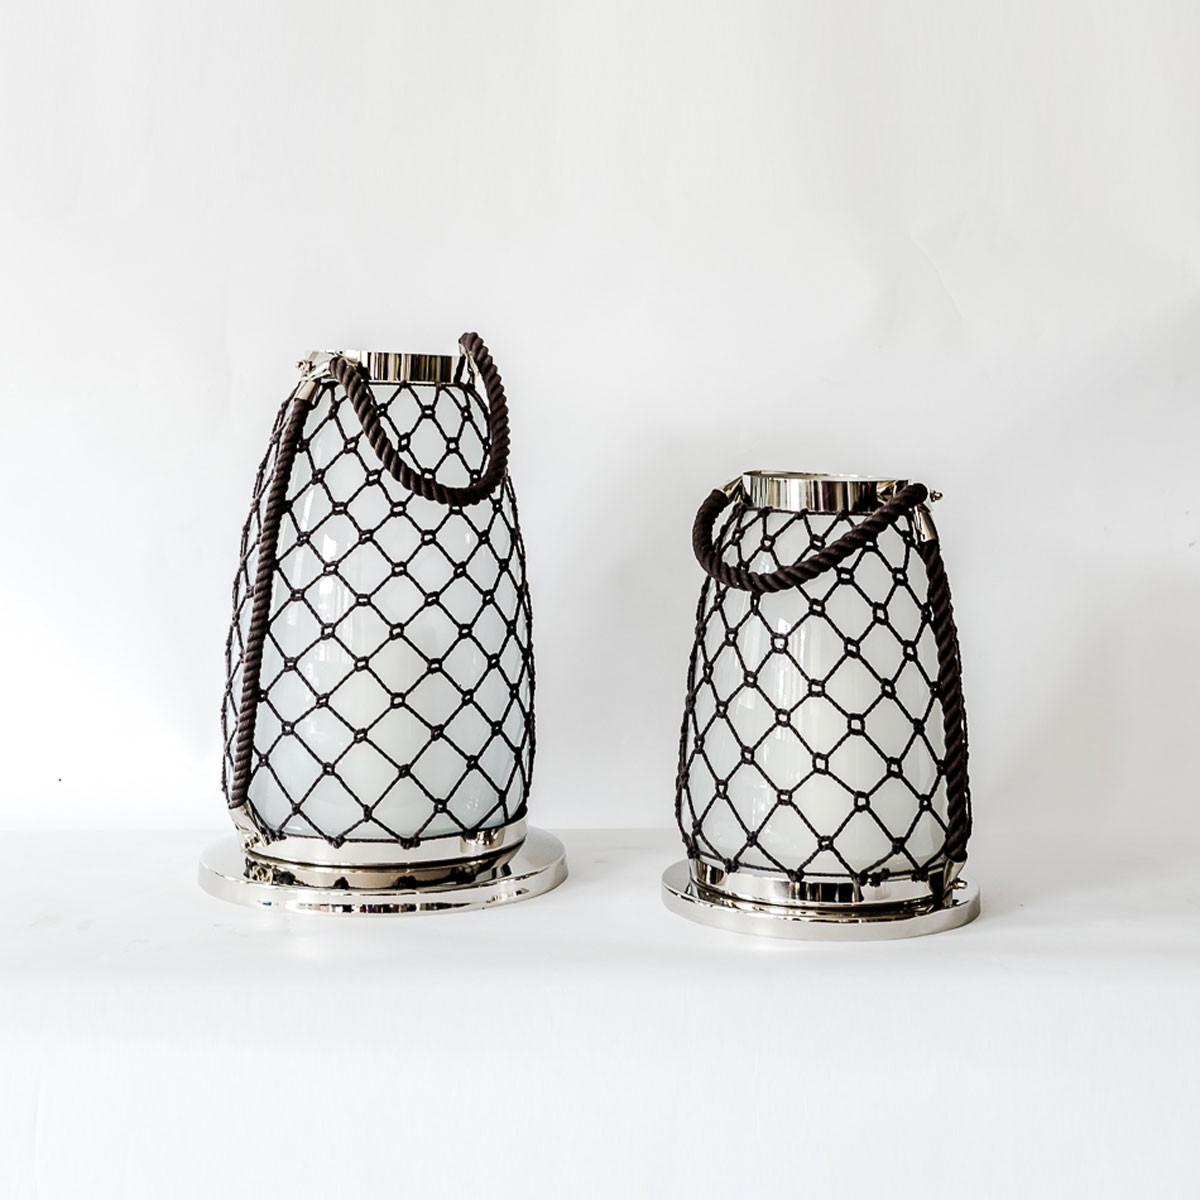 Aluminium & Glass Rope Decorative Lantern